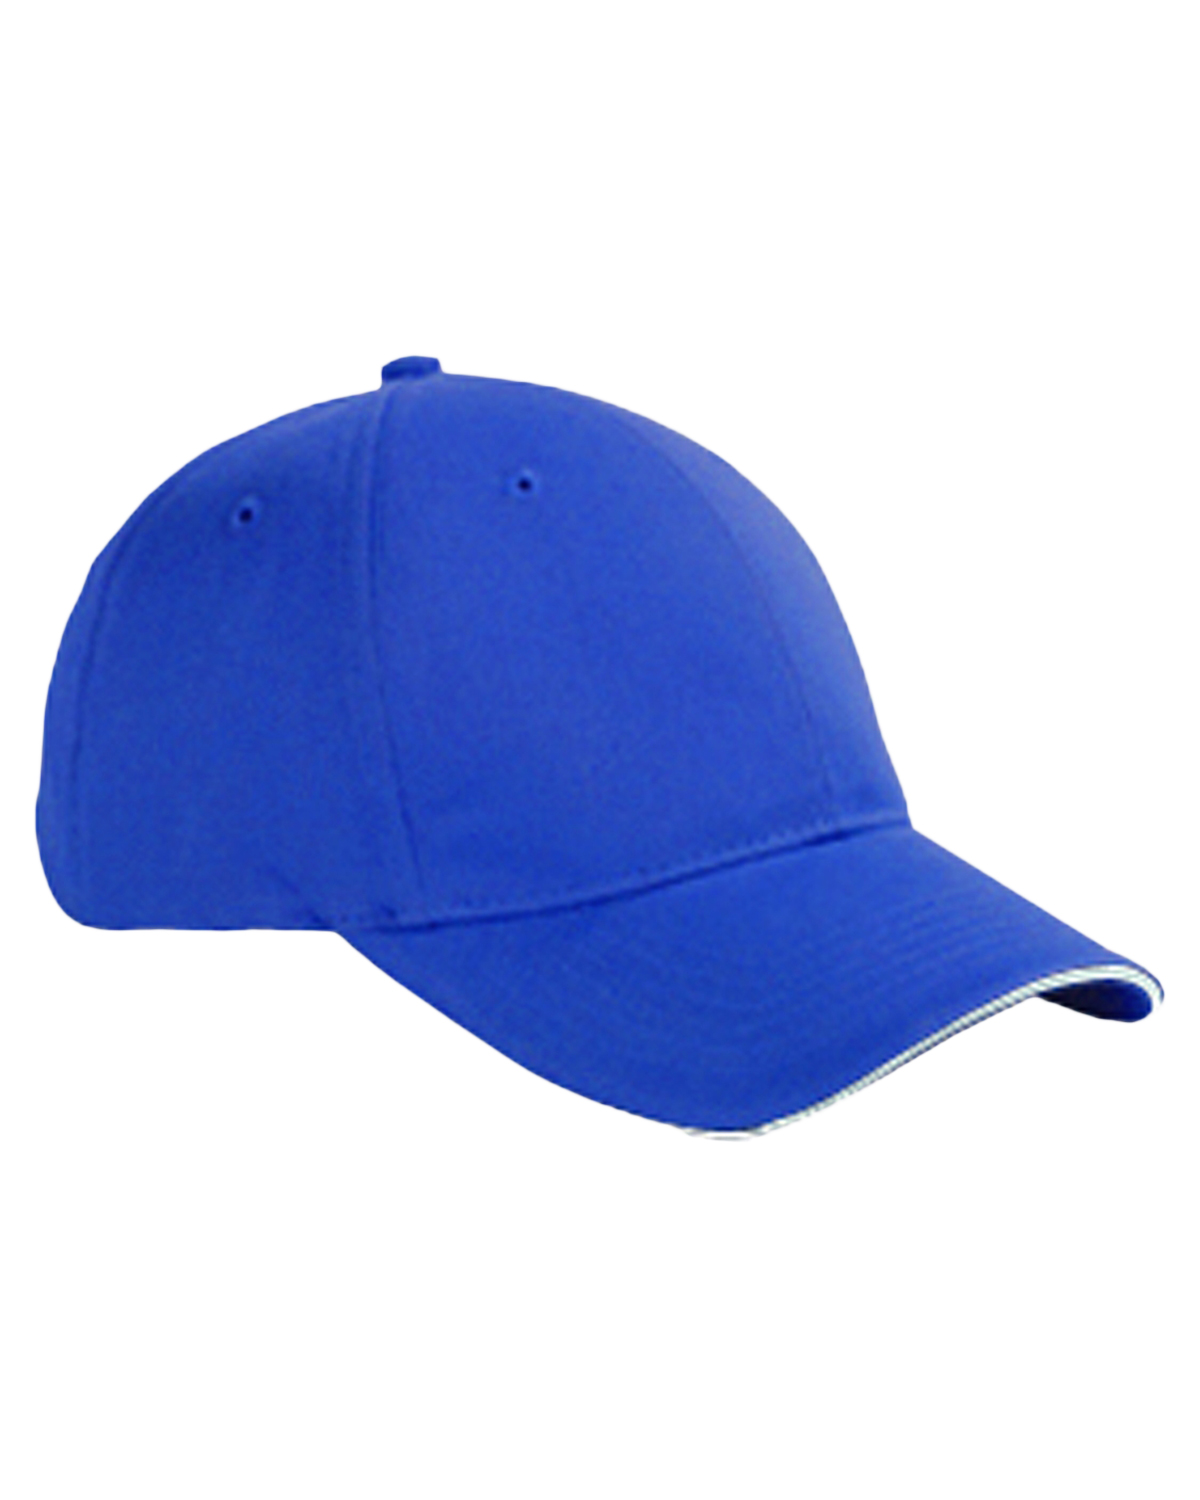 Big Accessories / BAGedge BX004 Unisex 6-Panel Twill Sandwich Baseball Cap Royal/White at GotApparel